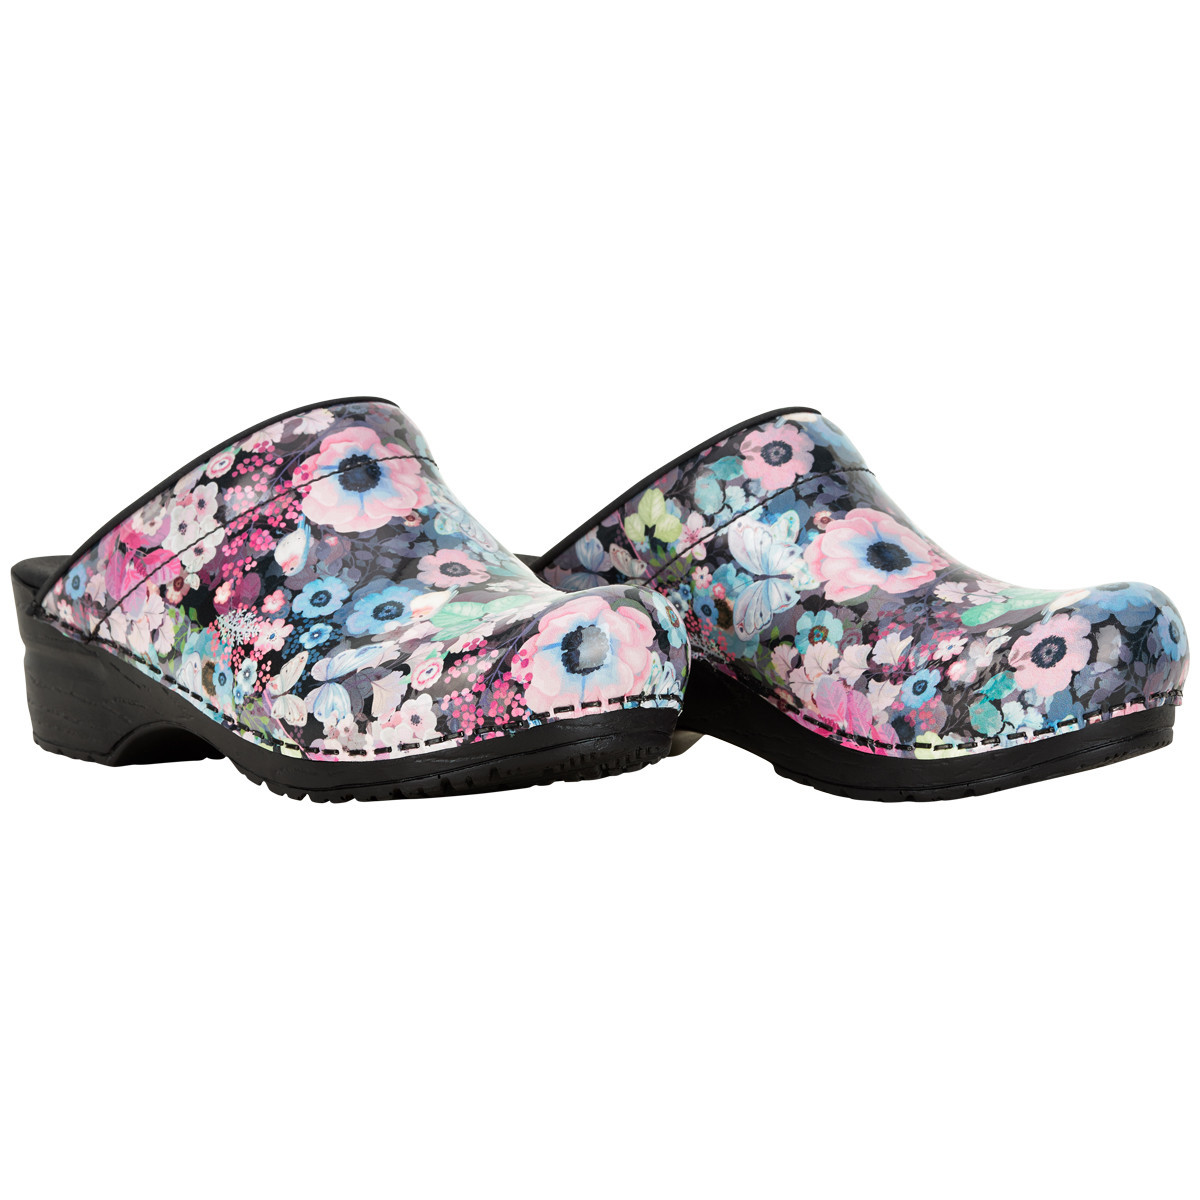 SANITA ISALENA CLOGS 457618 65